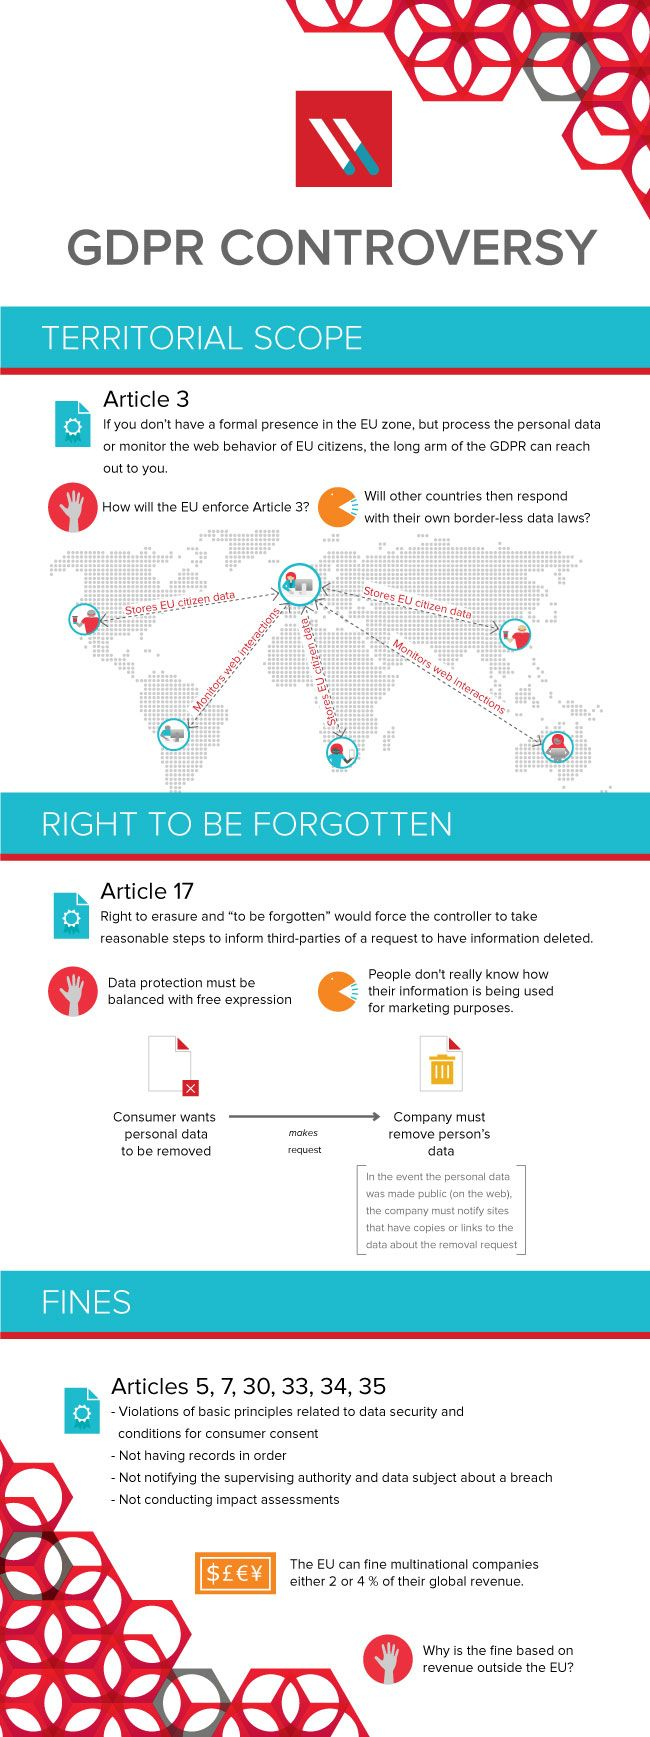 General Data Protection Regulation (GDPR) Infographic